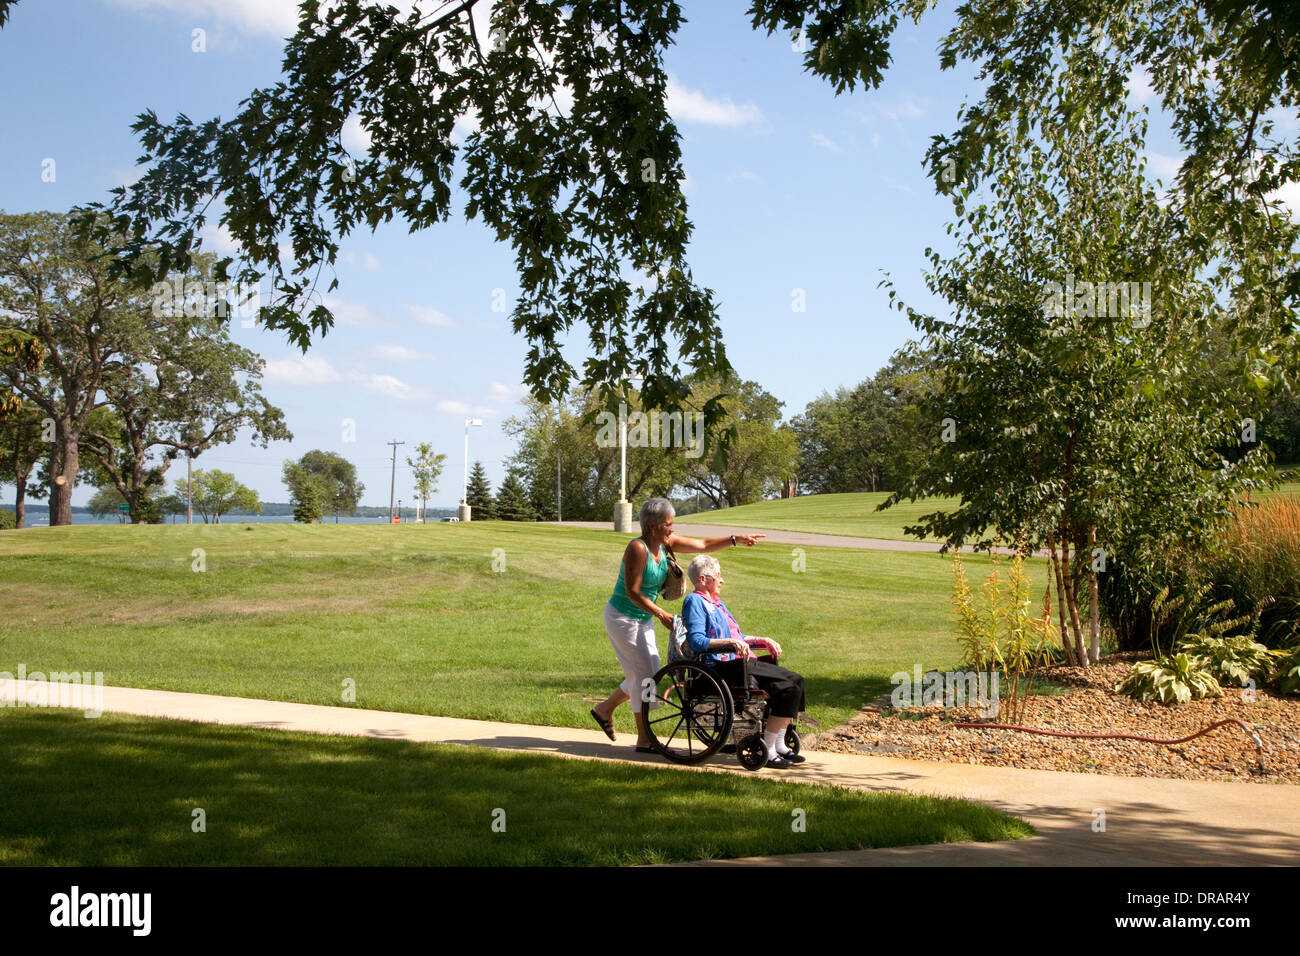 Elderly Woman Pushed In Wheelchair Through Nursing Home Park Battle Lake Minnesota MN USA